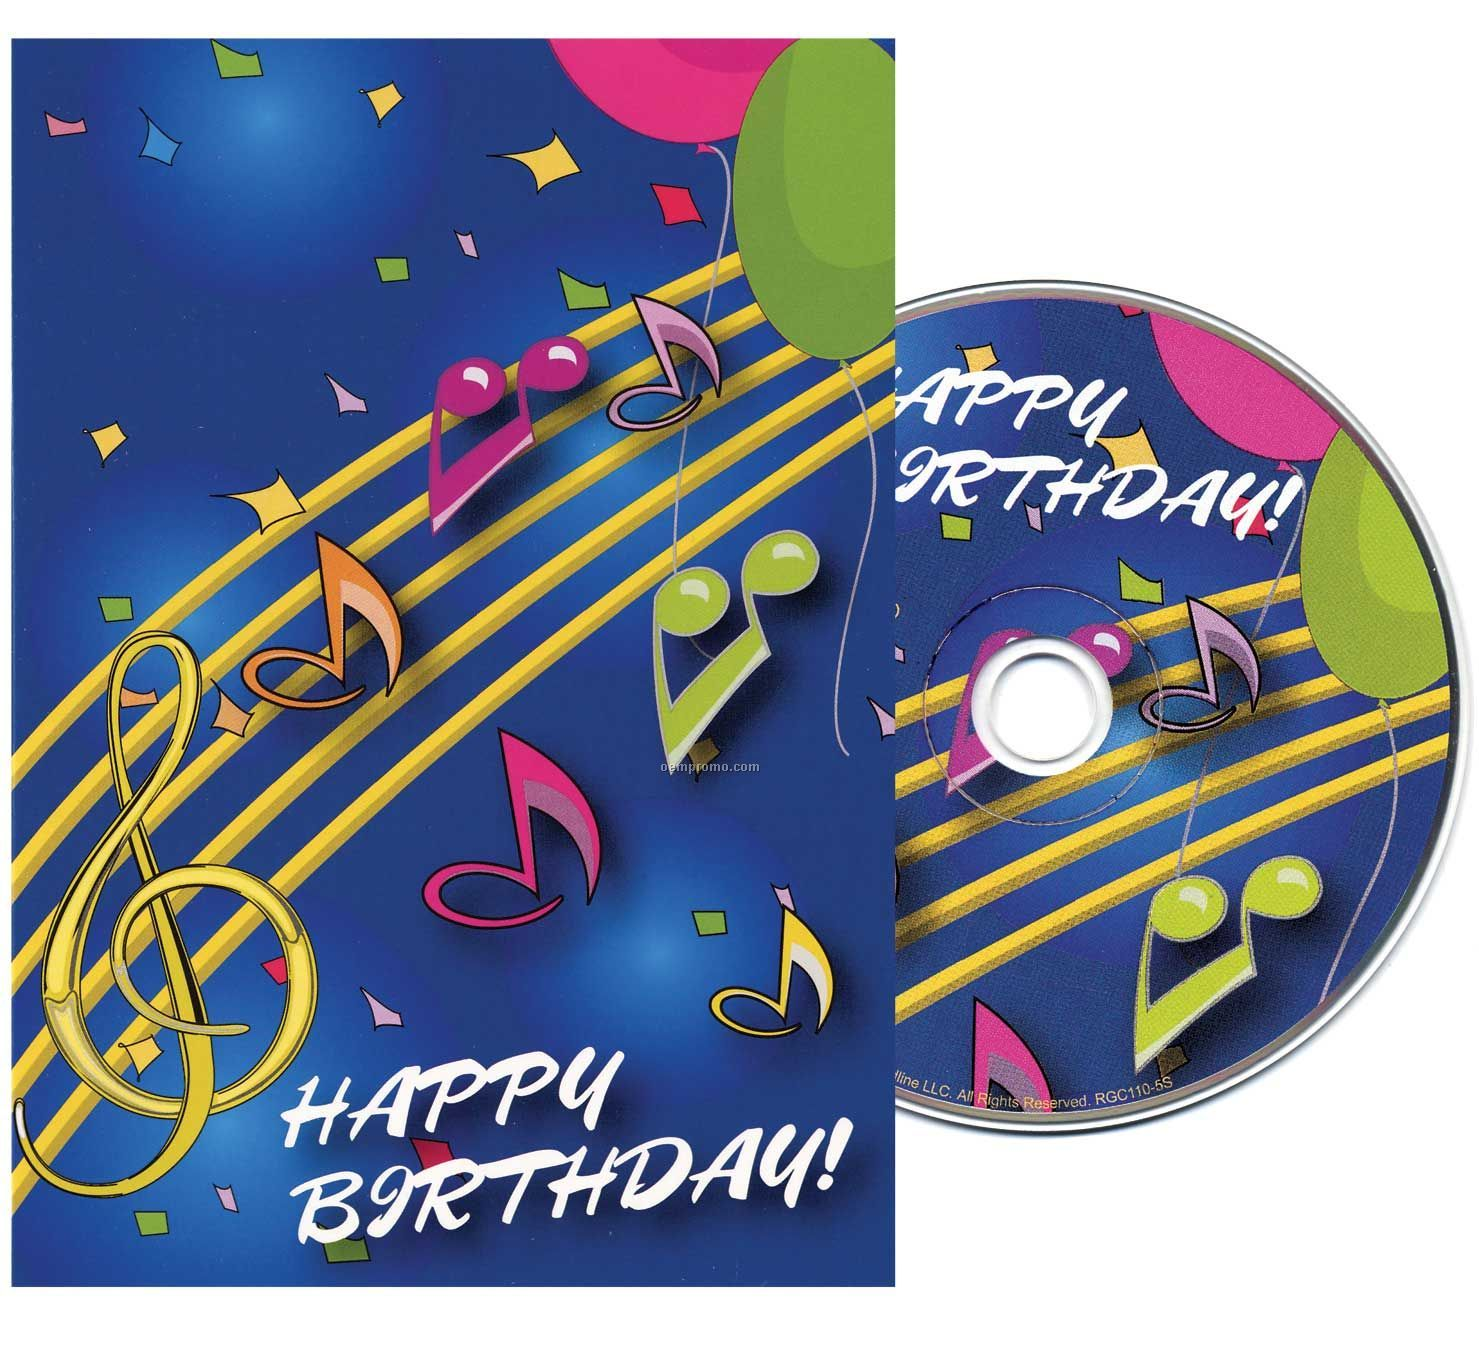 Elegant music birthday cards graphics eccleshallfc music notes birthday greeting card with matching cd china bookmarktalkfo Images